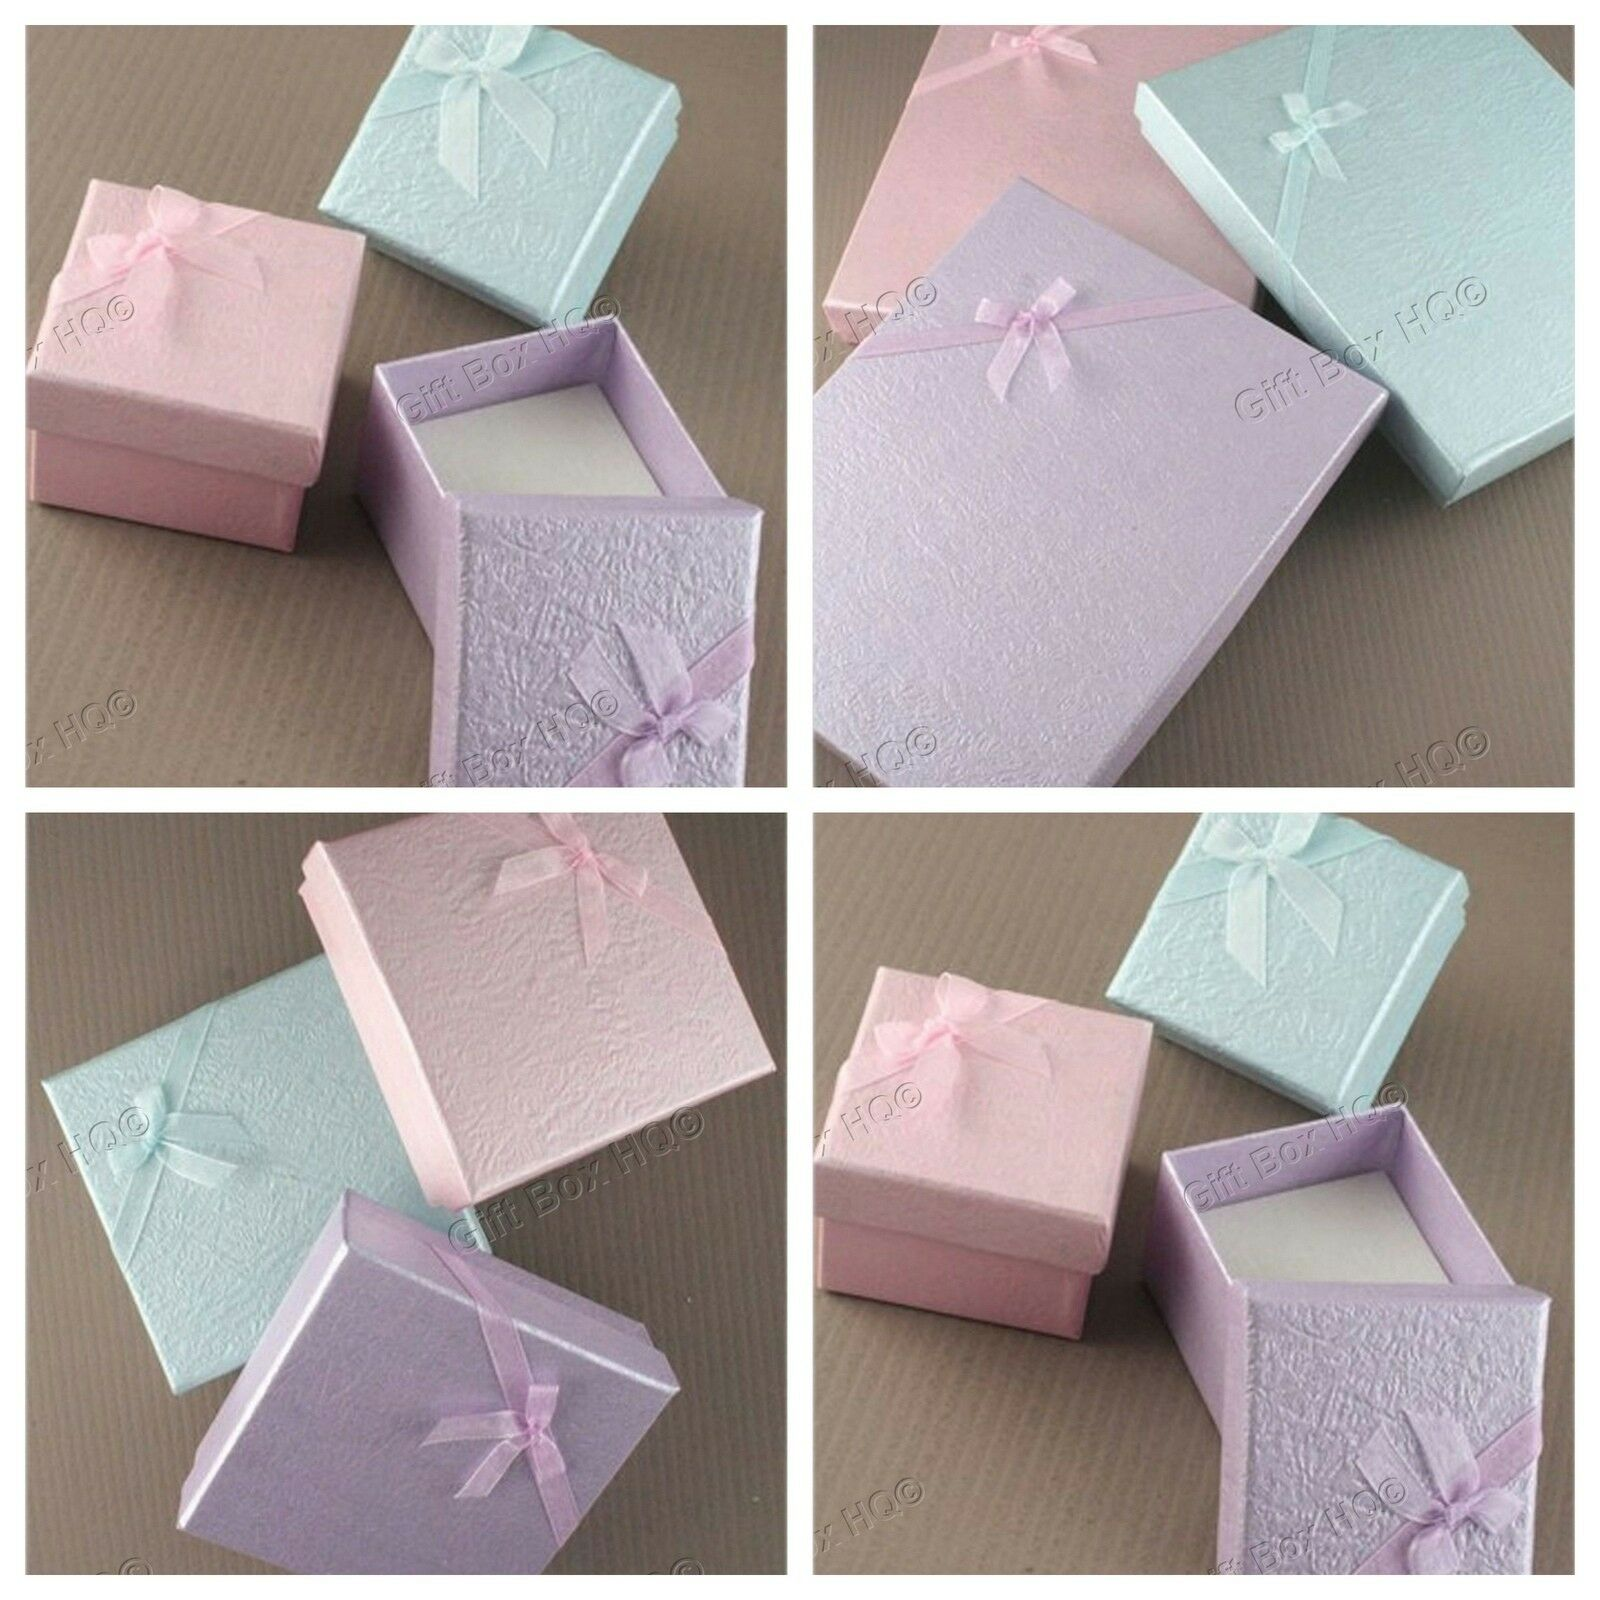 Jewellery - JEWELLERY GIFT BOXES COLOURED RING NECKLACE BRACELET EARRING SET DISPLAY JEWELRY